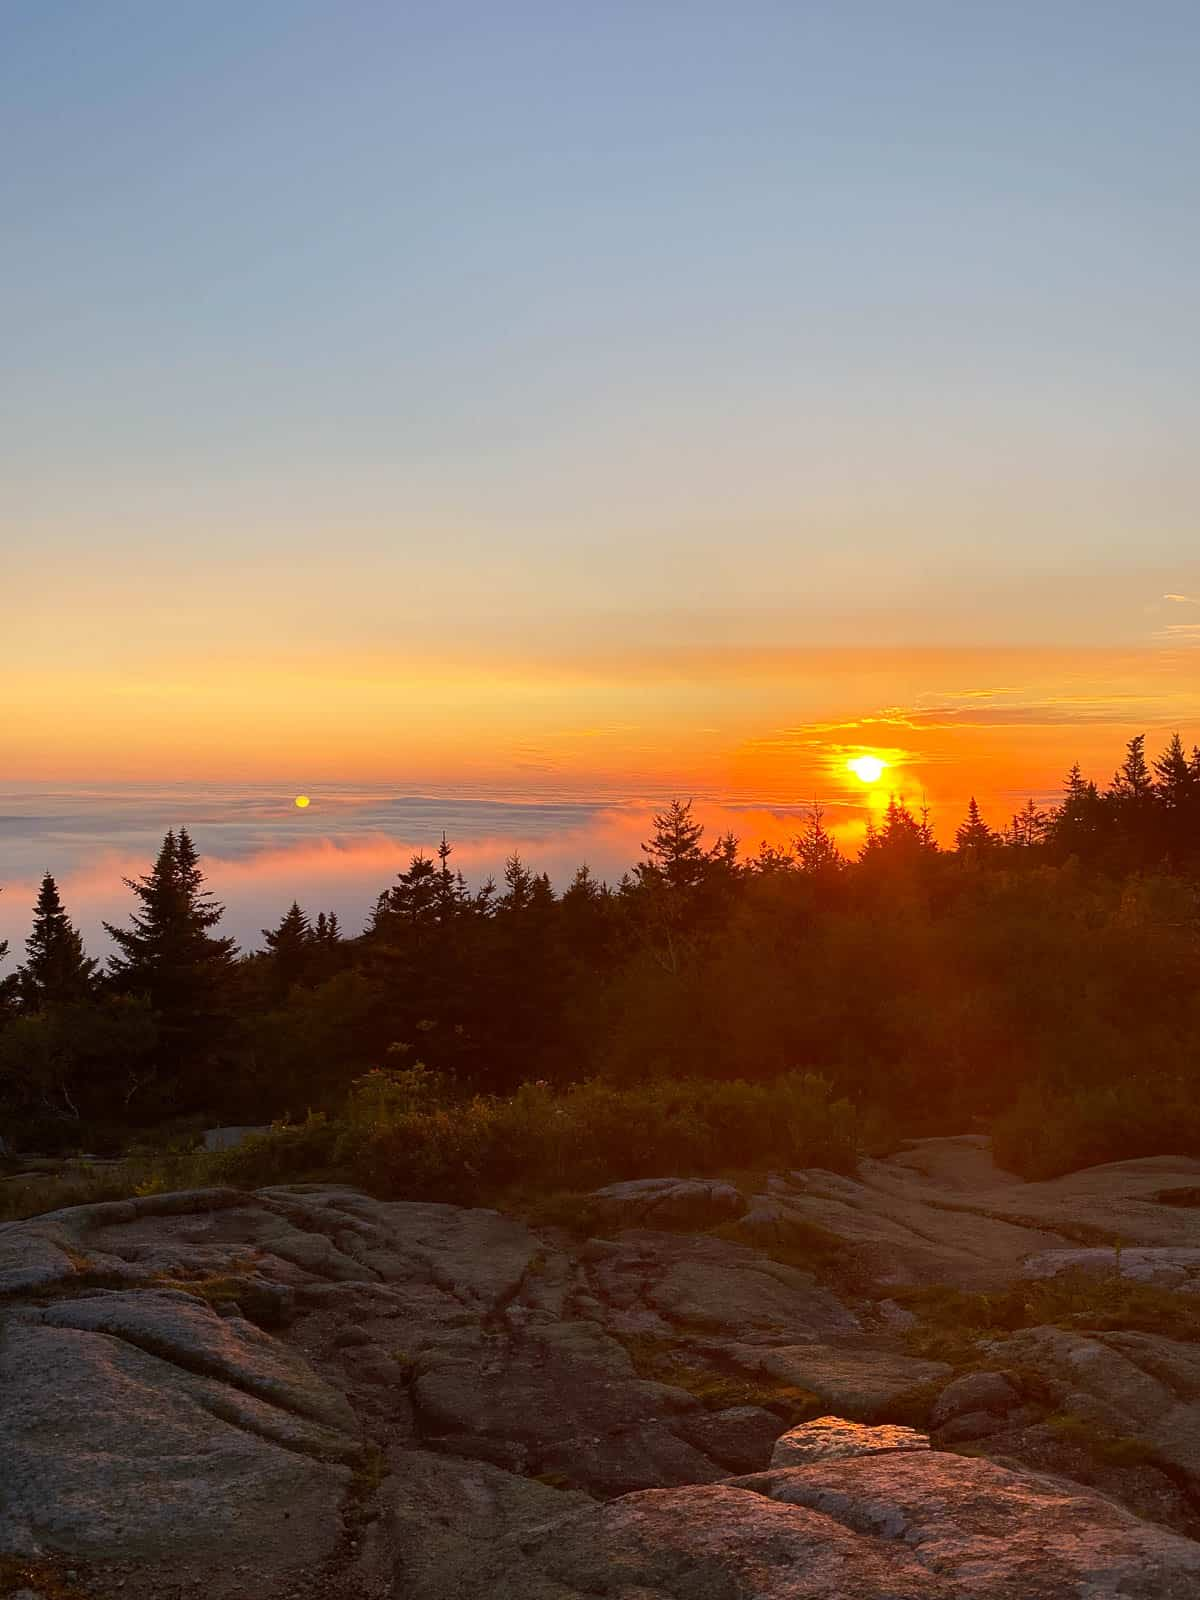 sunrise at Cadillac Mountain near Bar Harbor, Maine